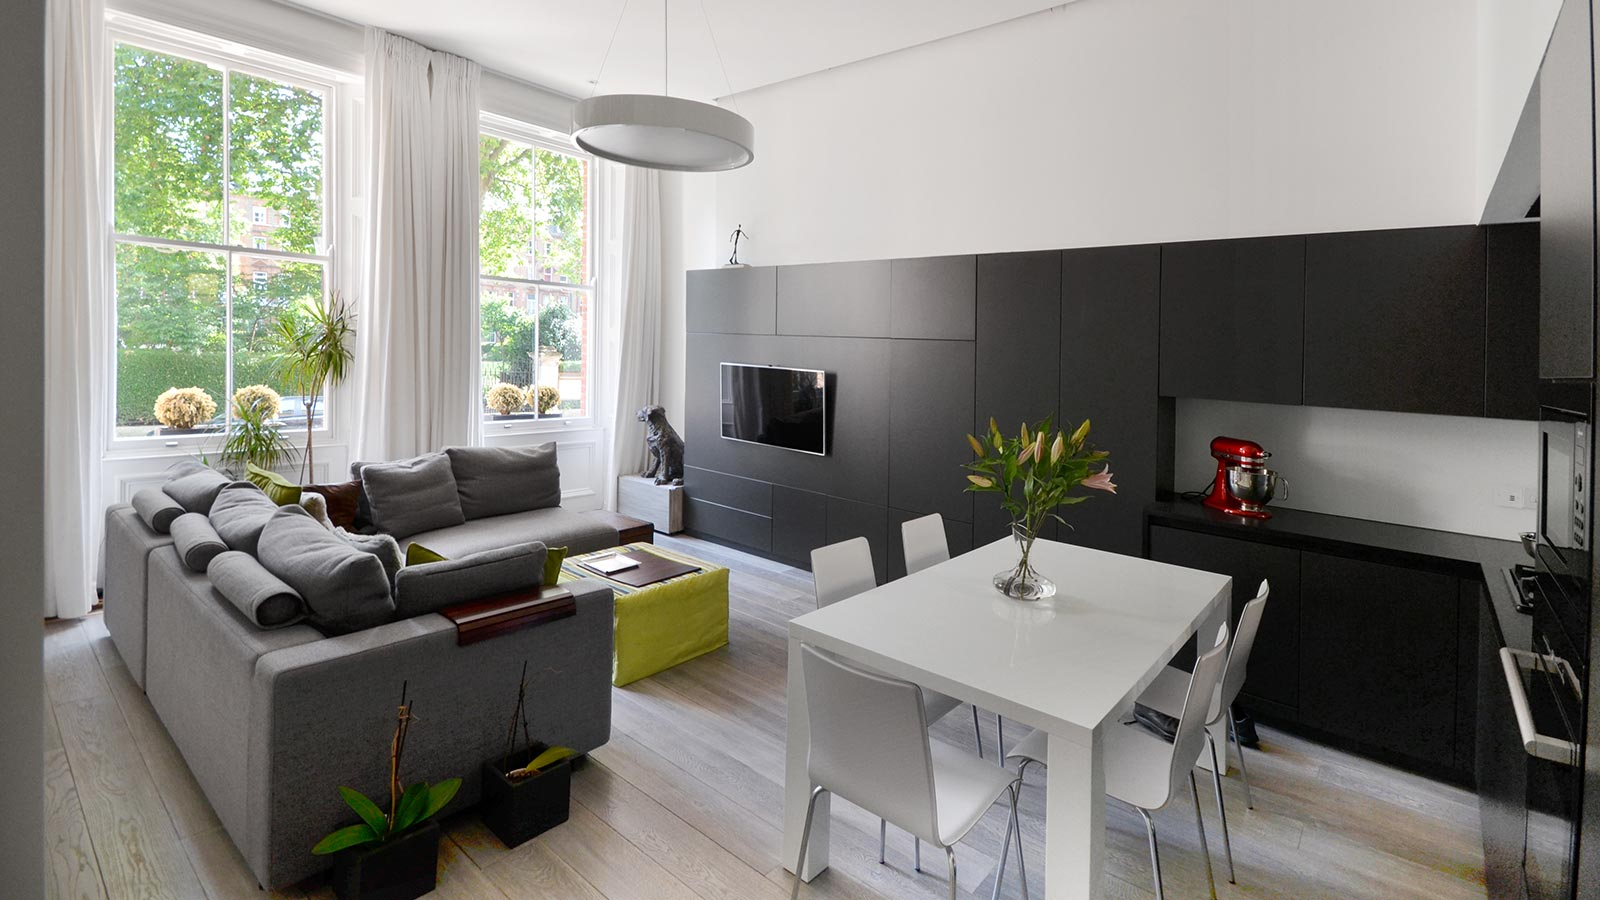 An Edwardian home in London, UK gets a complete renovation to suit the needs of a young family